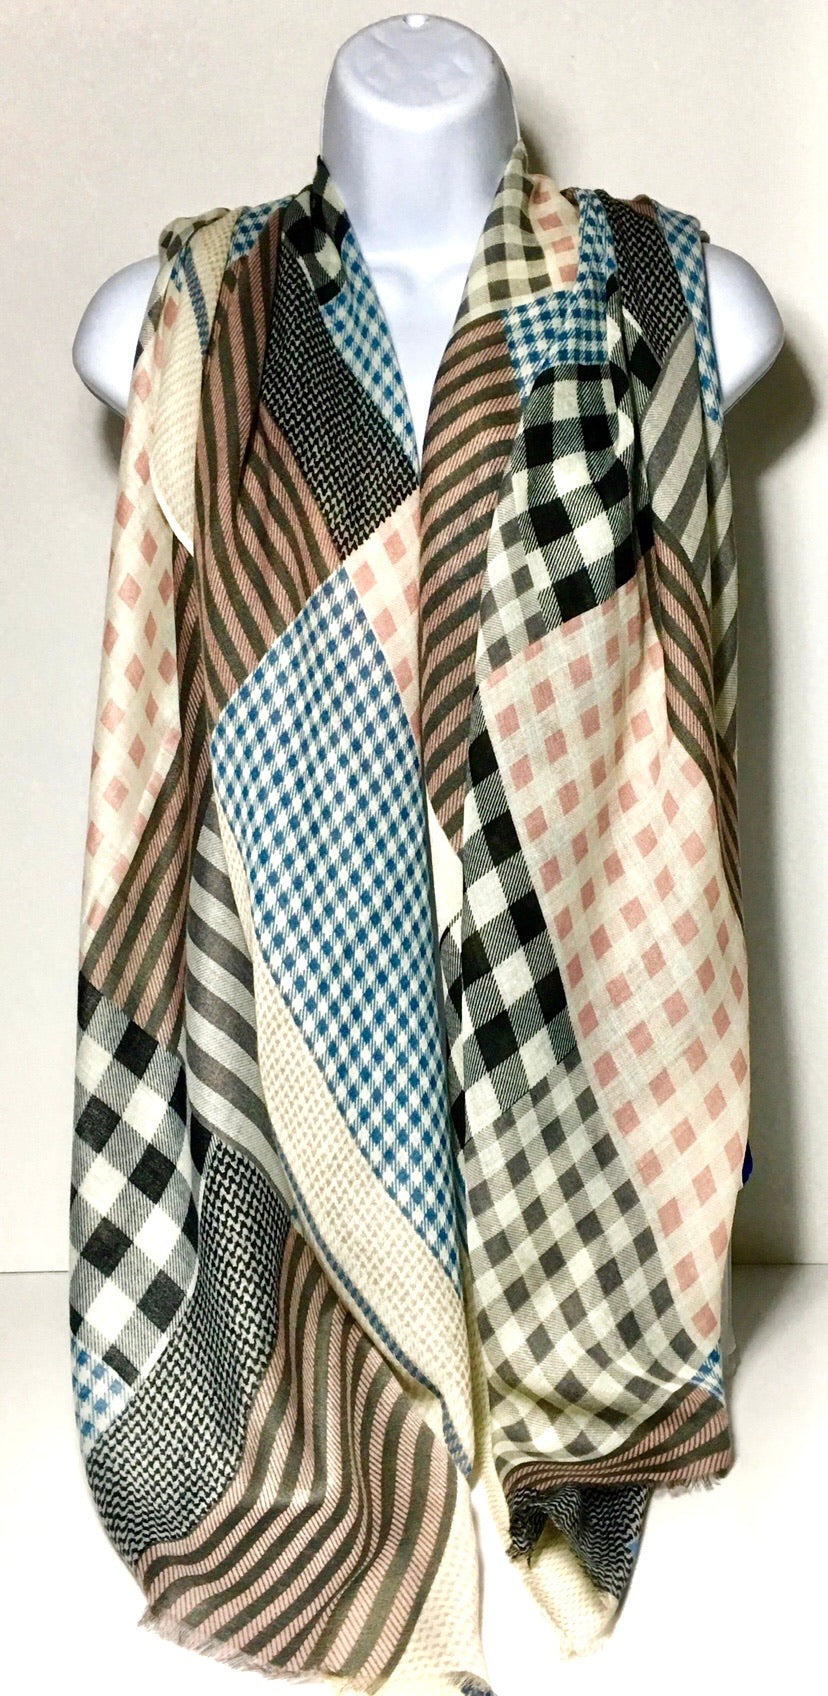 Shades of pink, blue, black and stone multi-check scarf